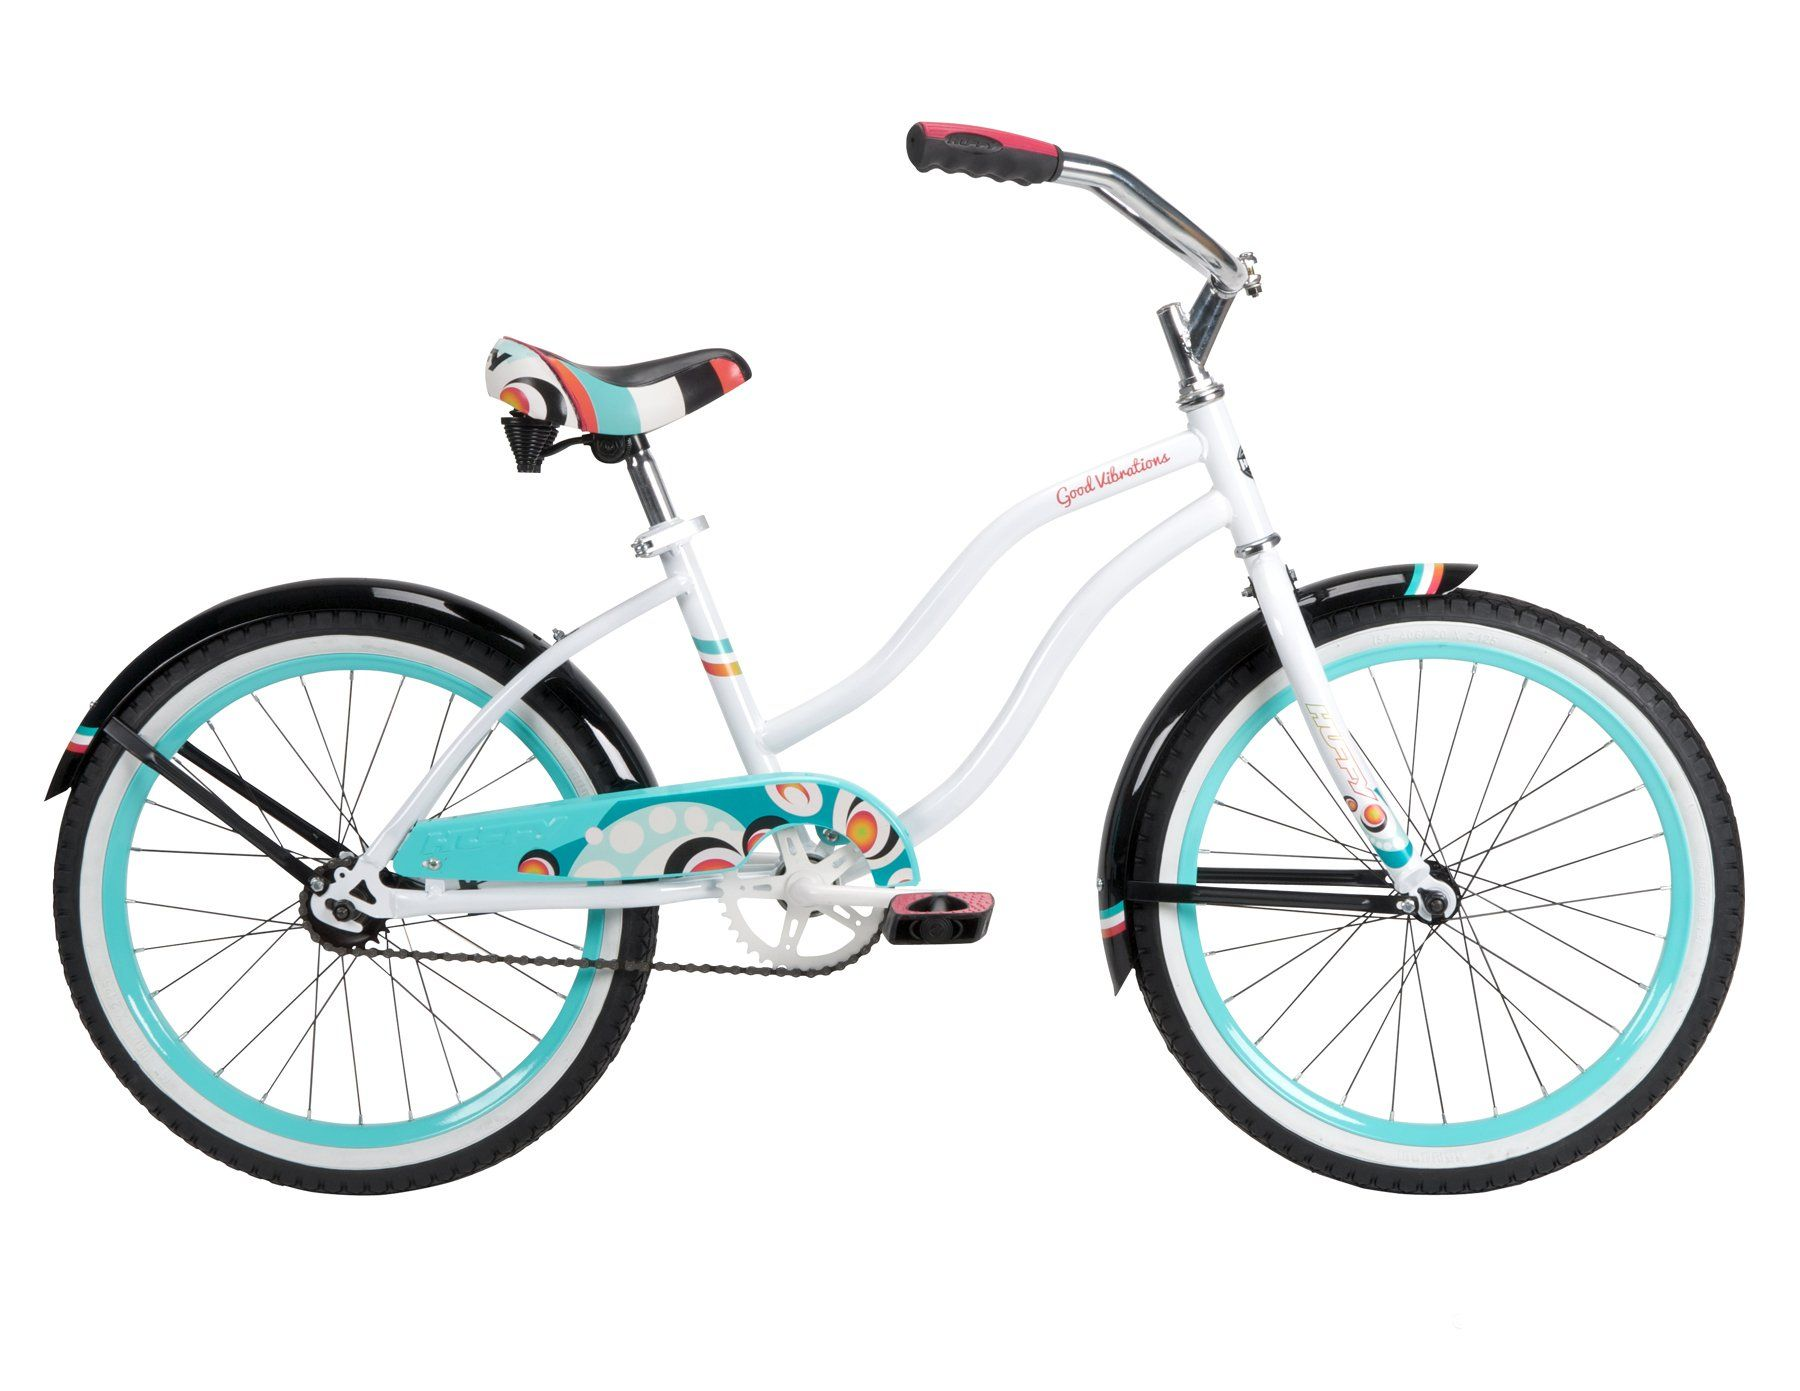 ed868d3e720 Amazon.com: Huffy Bicycle Company Number 23555 Girls Good Vibrations Bike,  White Beach, 20-Inch: Sports & Outdoors